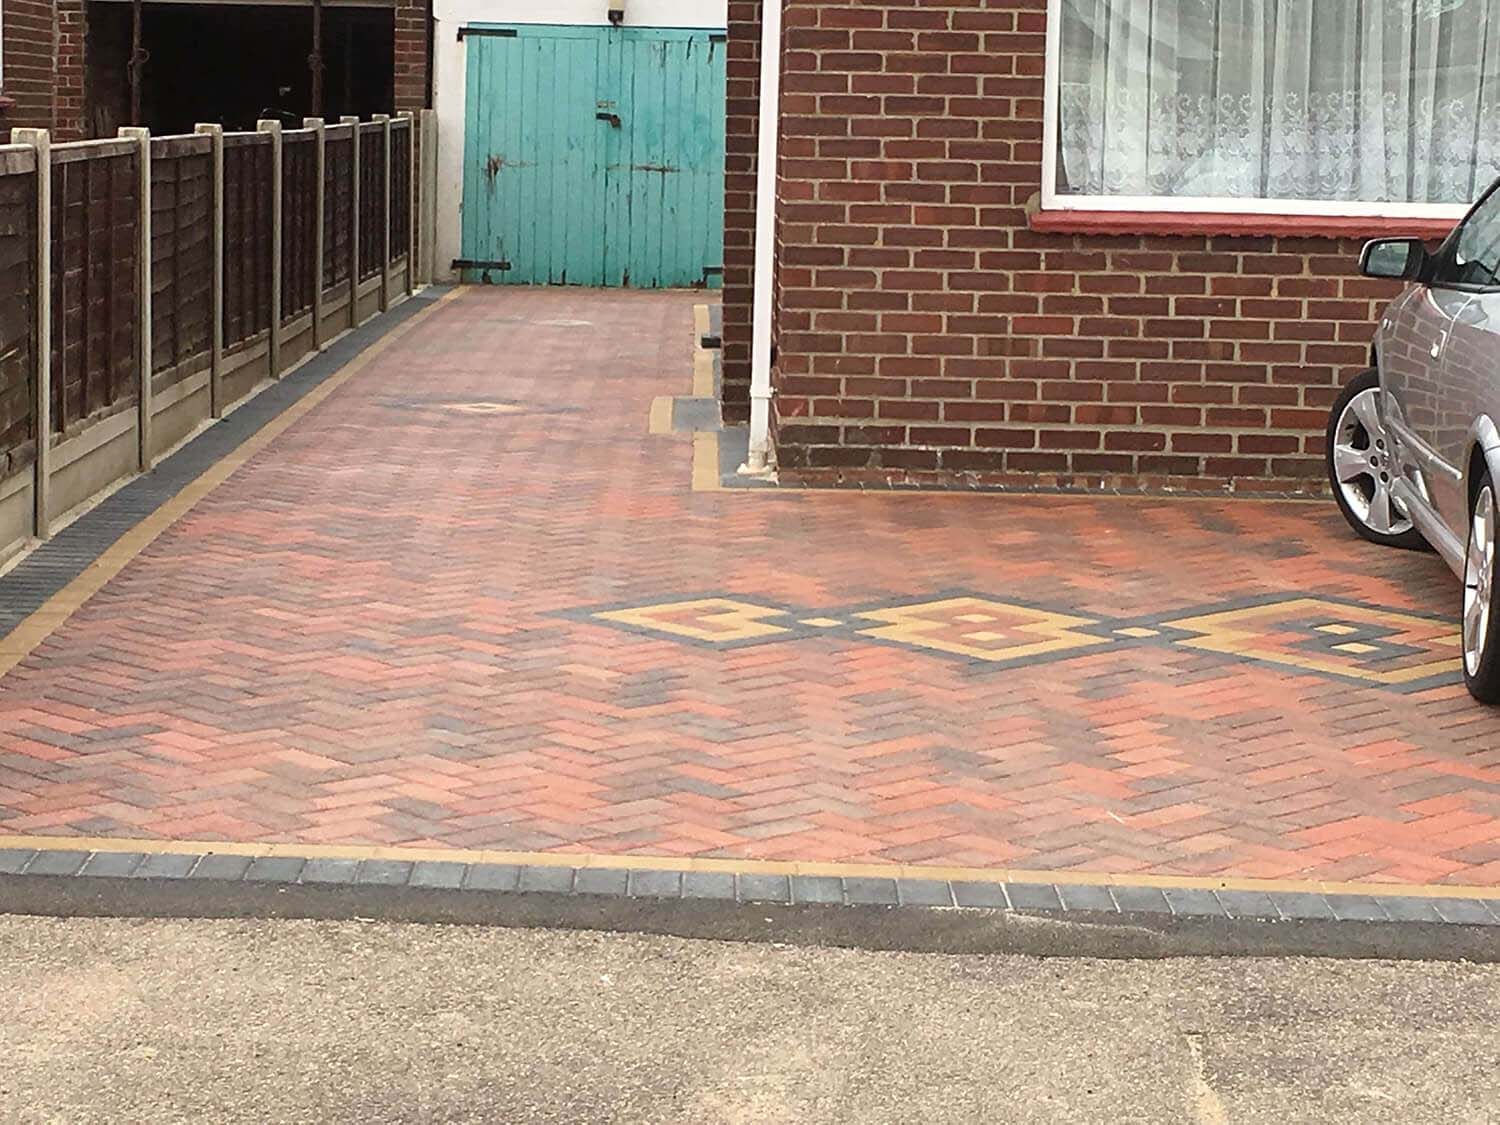 Paving Contractors Near Me in Chester